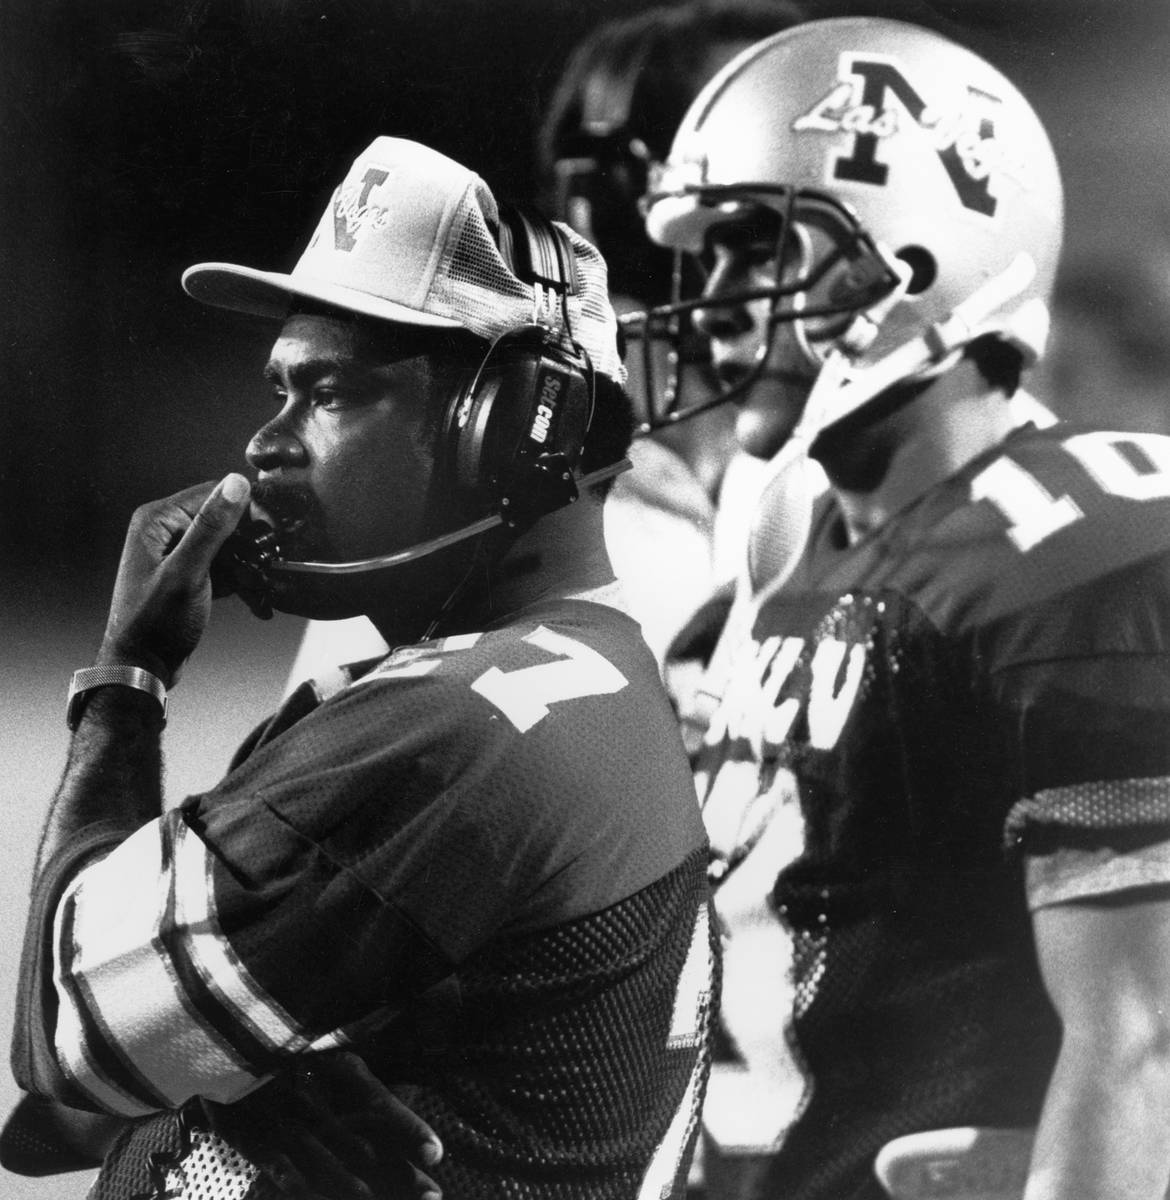 UNLV coach Wayne Nunnely coaches in uniform on Oct. 3, 1987, against UNR at Sam Boyd Stadium. P ...